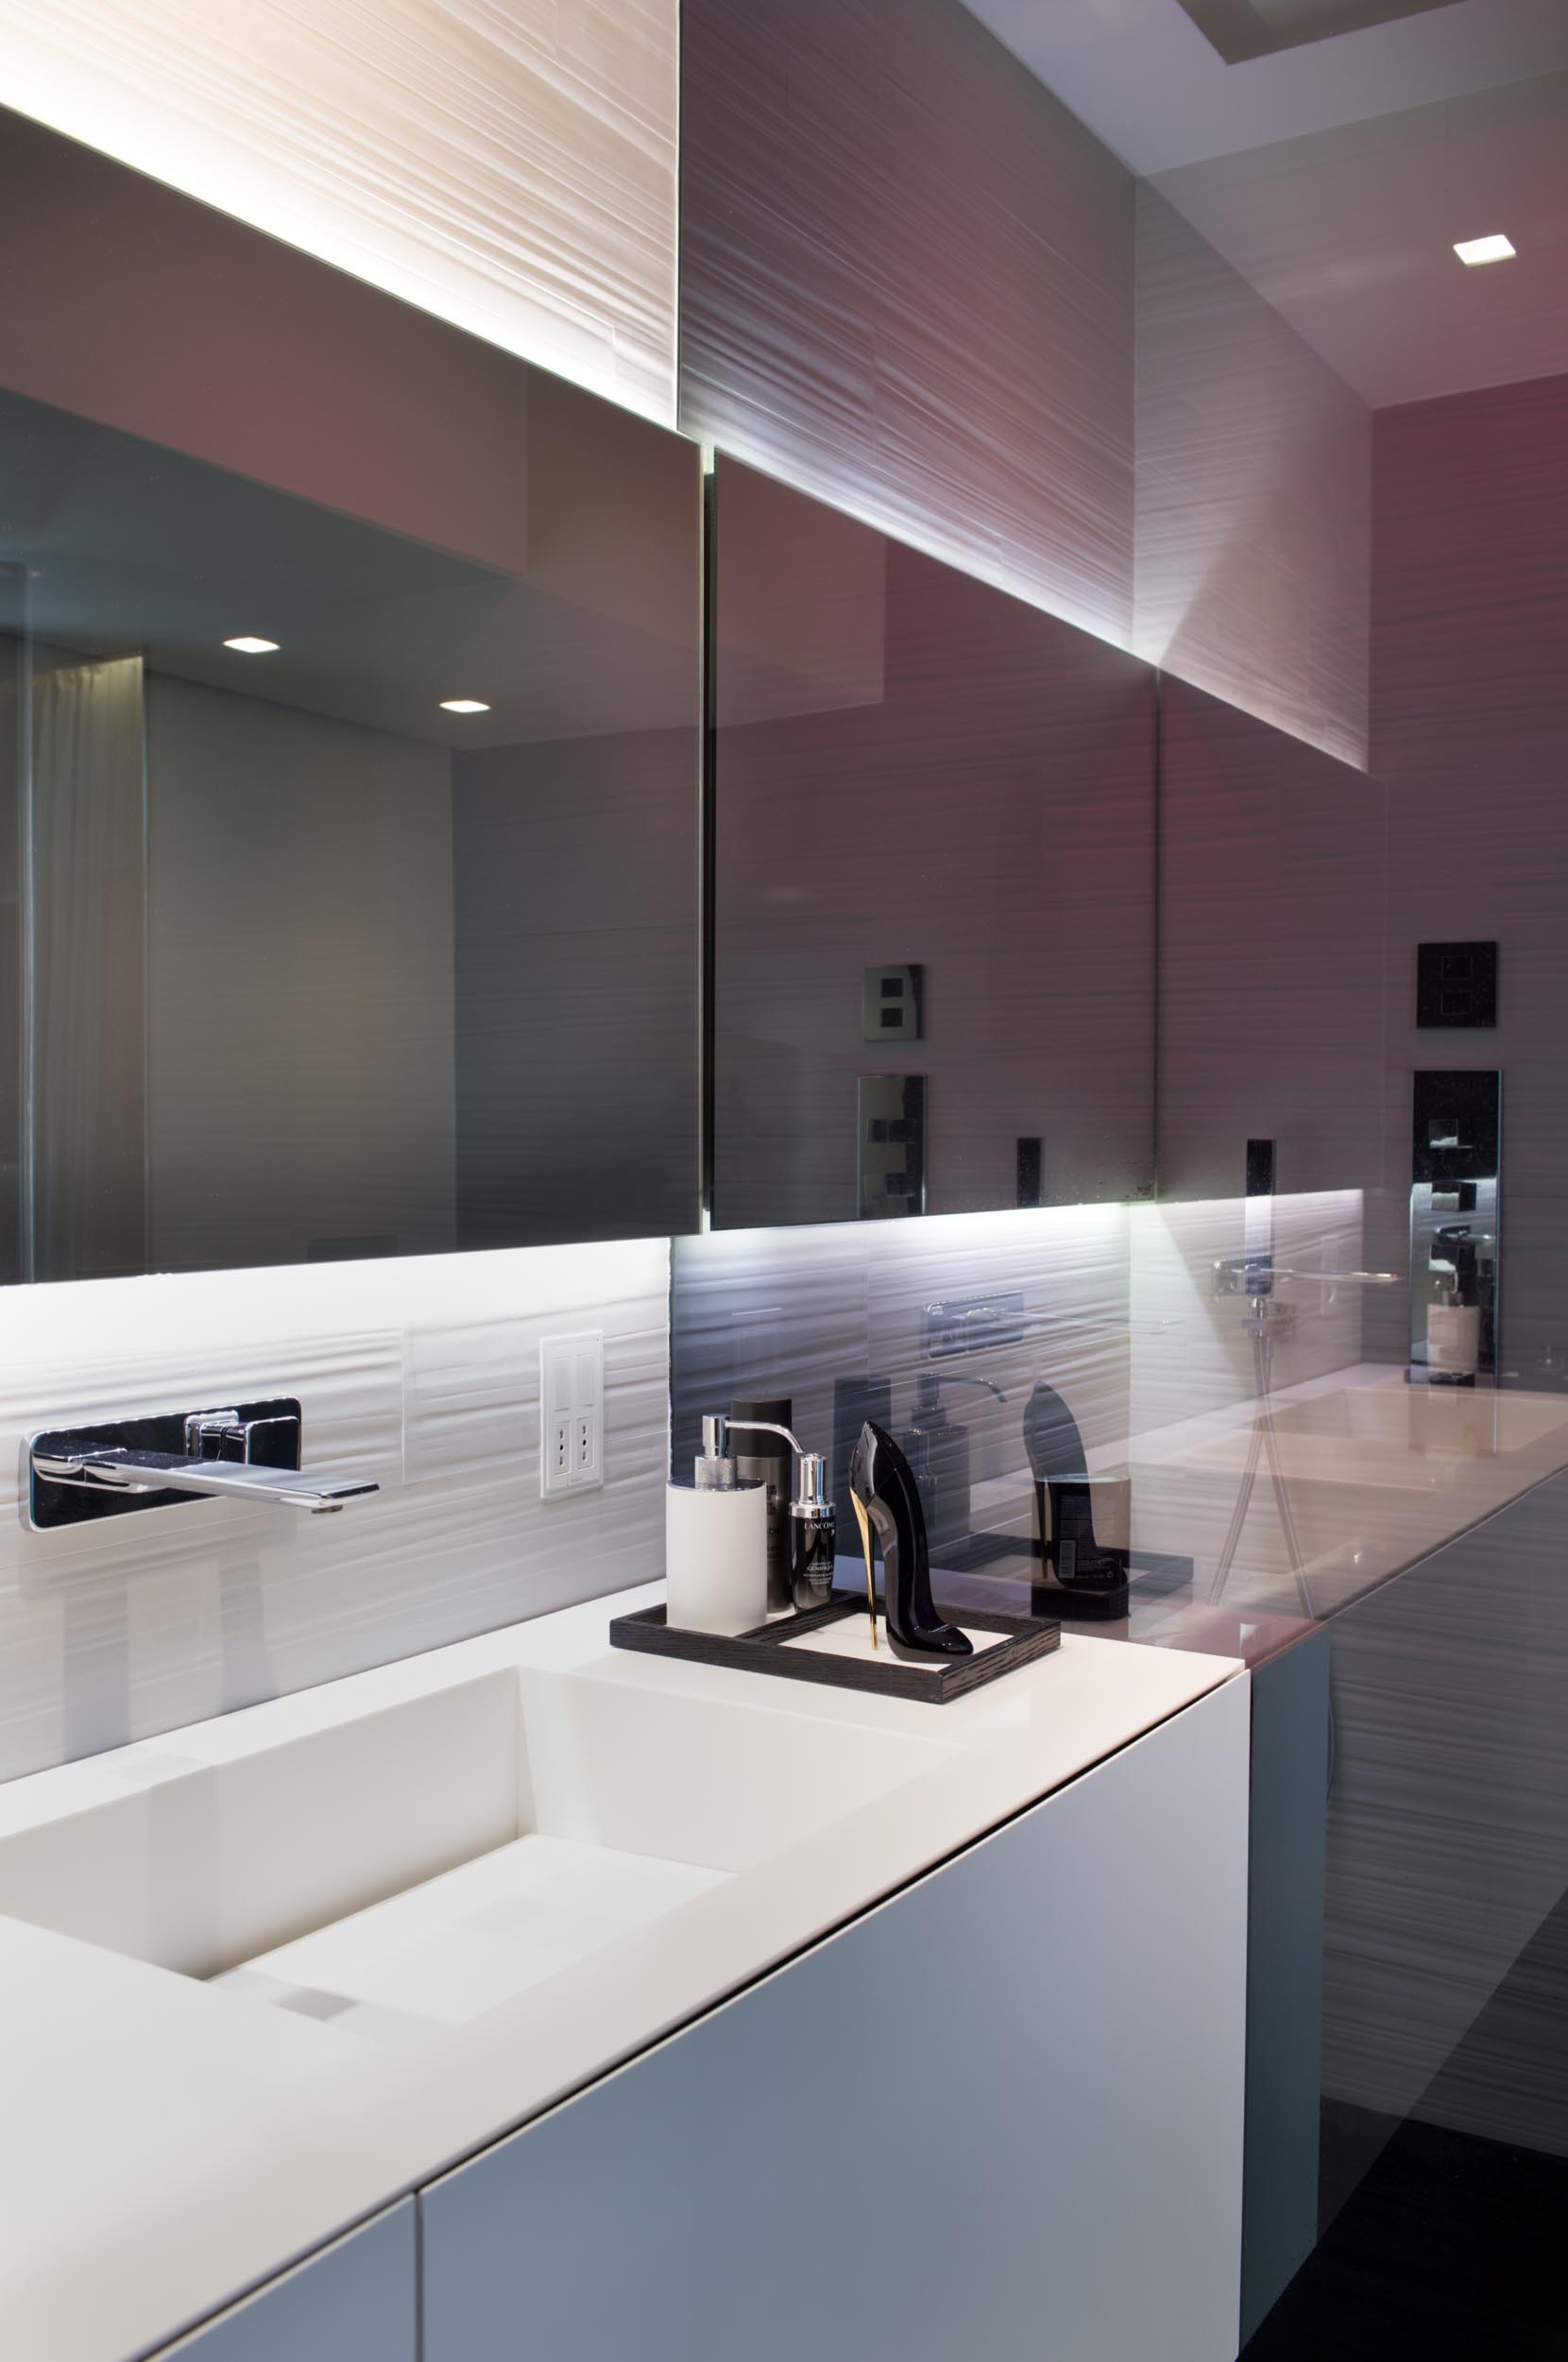 A modern bathroom with a white vanity and backlit mirror.